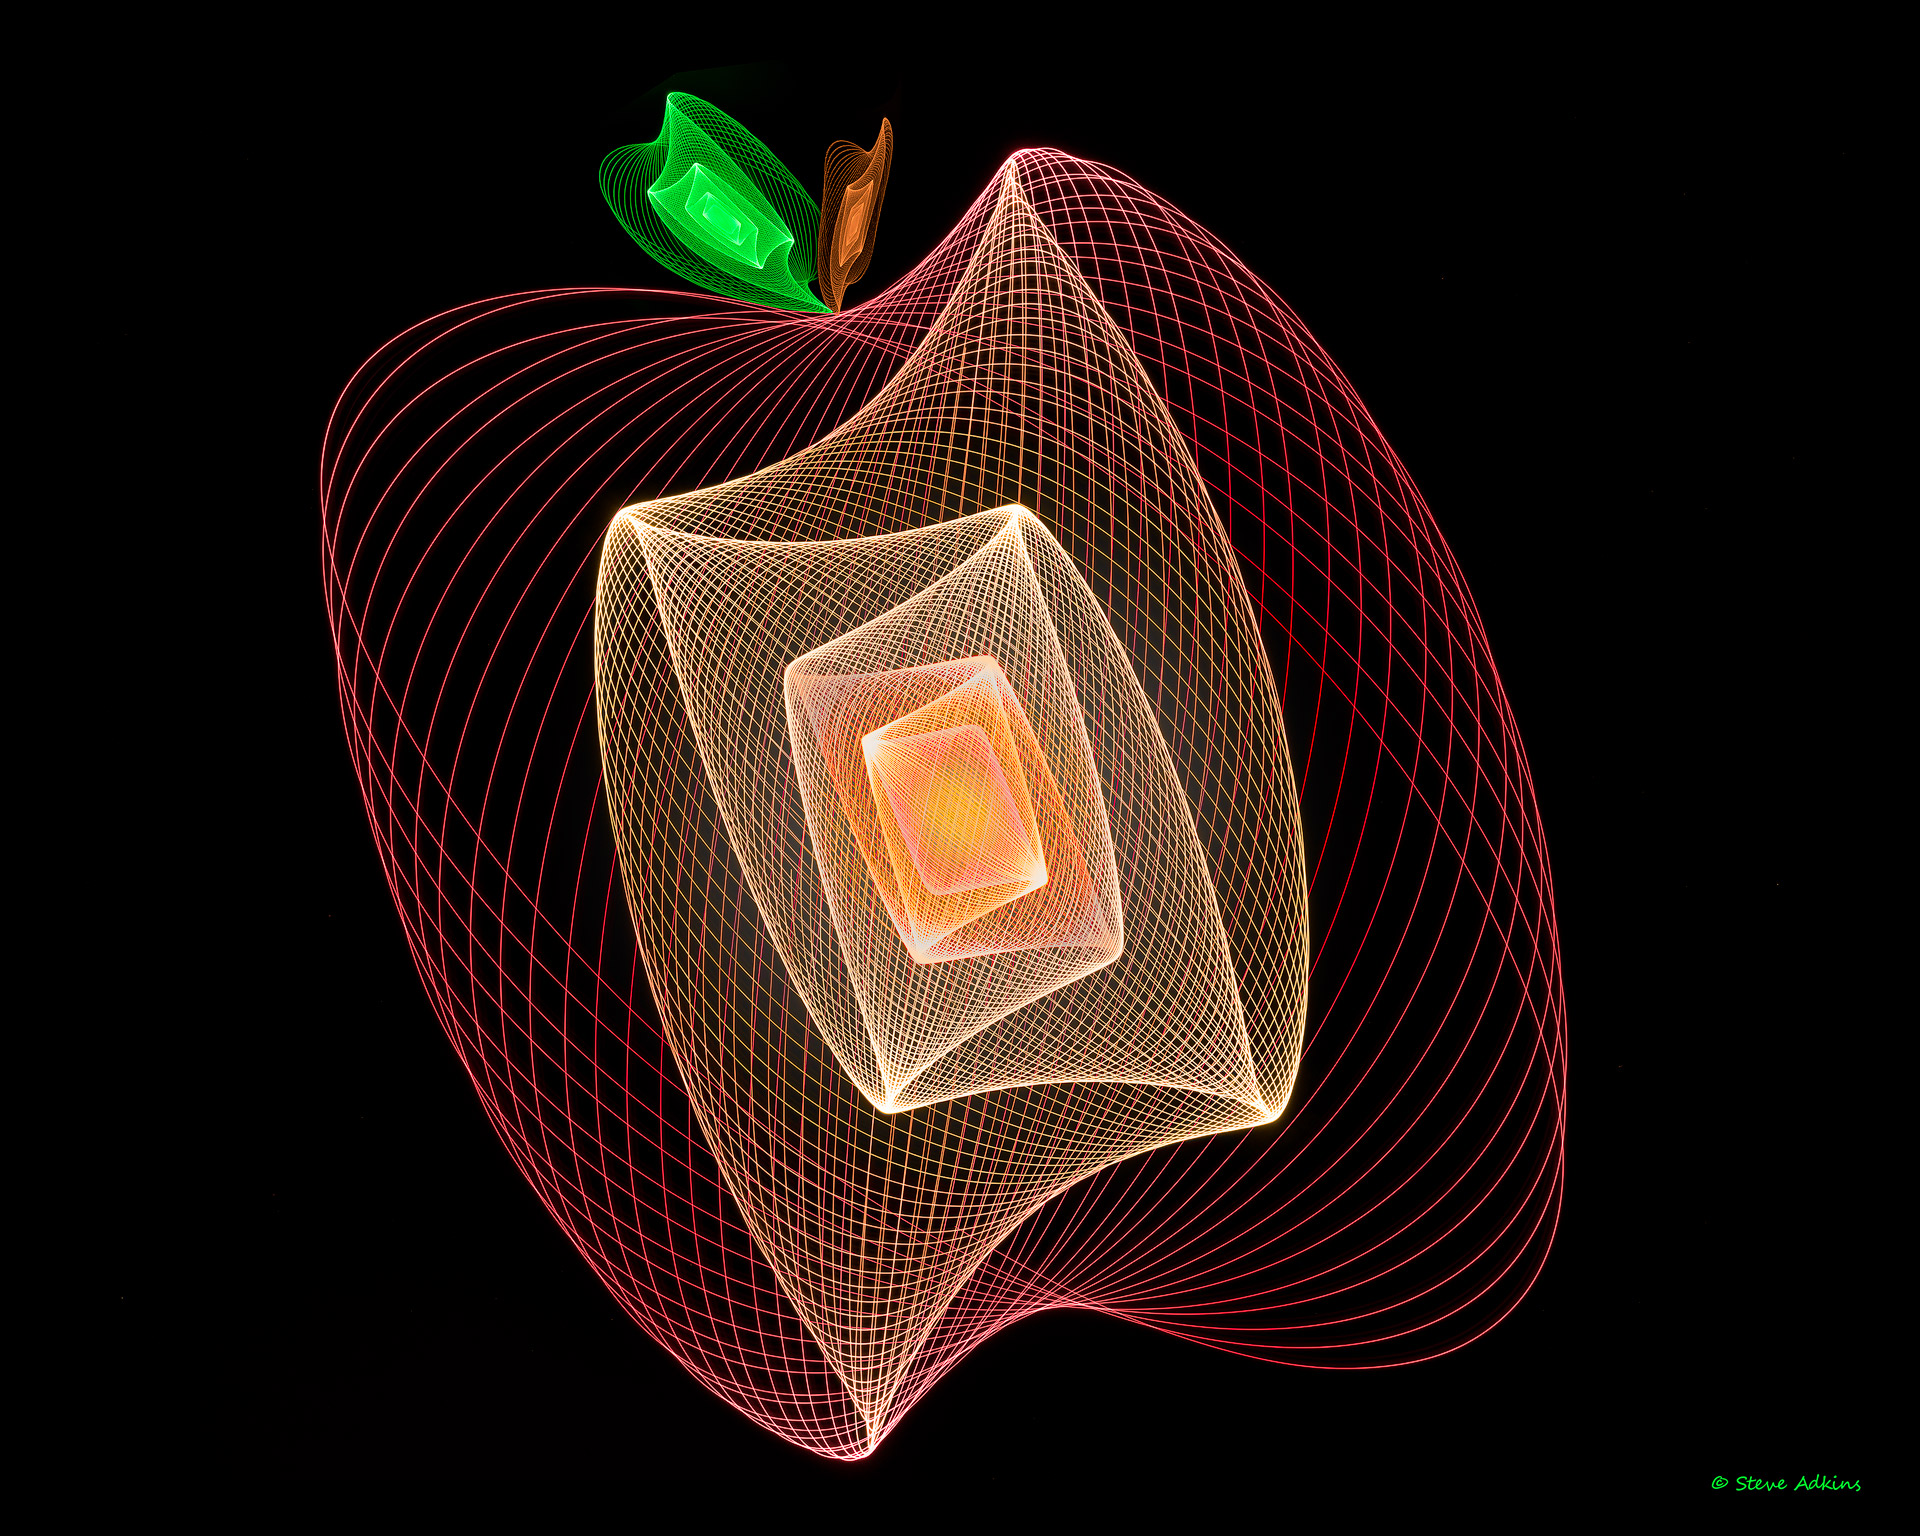 Physiogram light painting composite that looks like an apple.